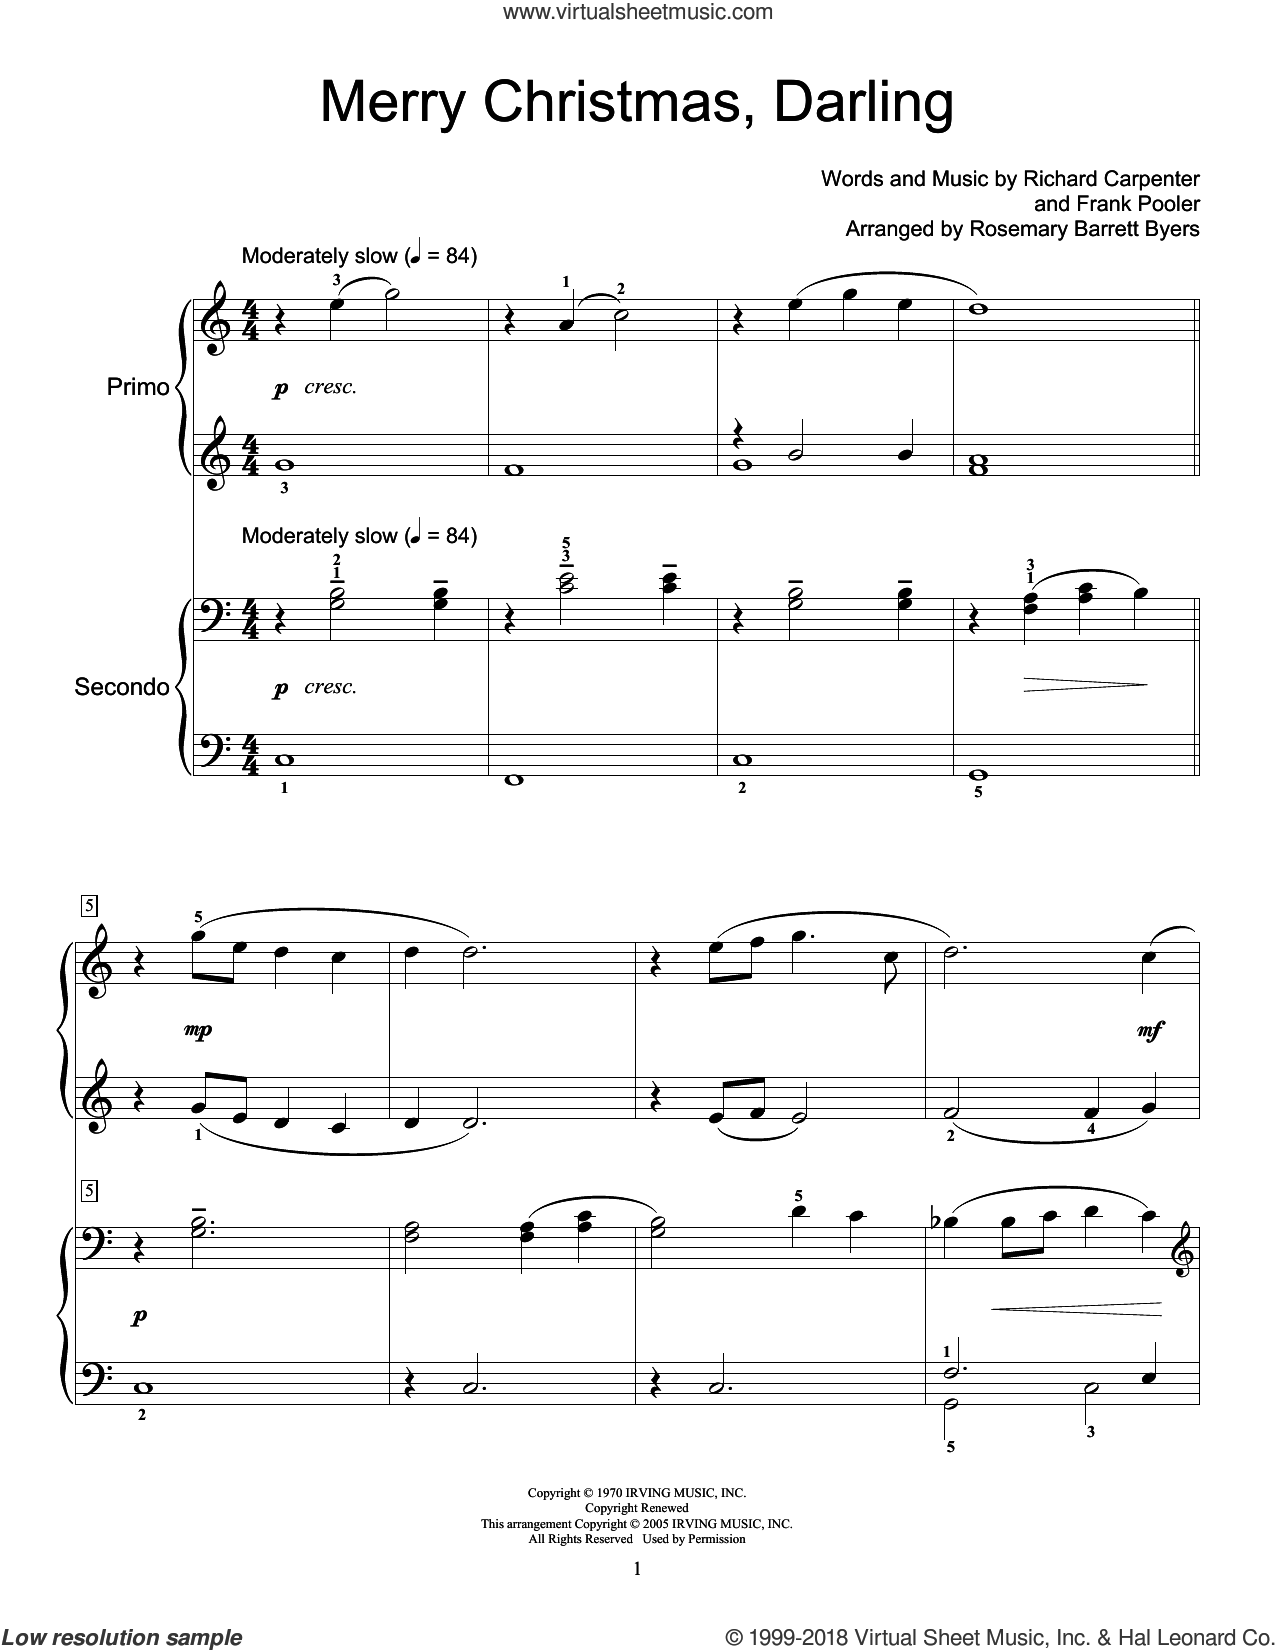 Merry Christmas, Darling sheet music for piano four hands by Carpenters, Miscellaneous, Frank Pooler and Richard Carpenter, intermediate skill level